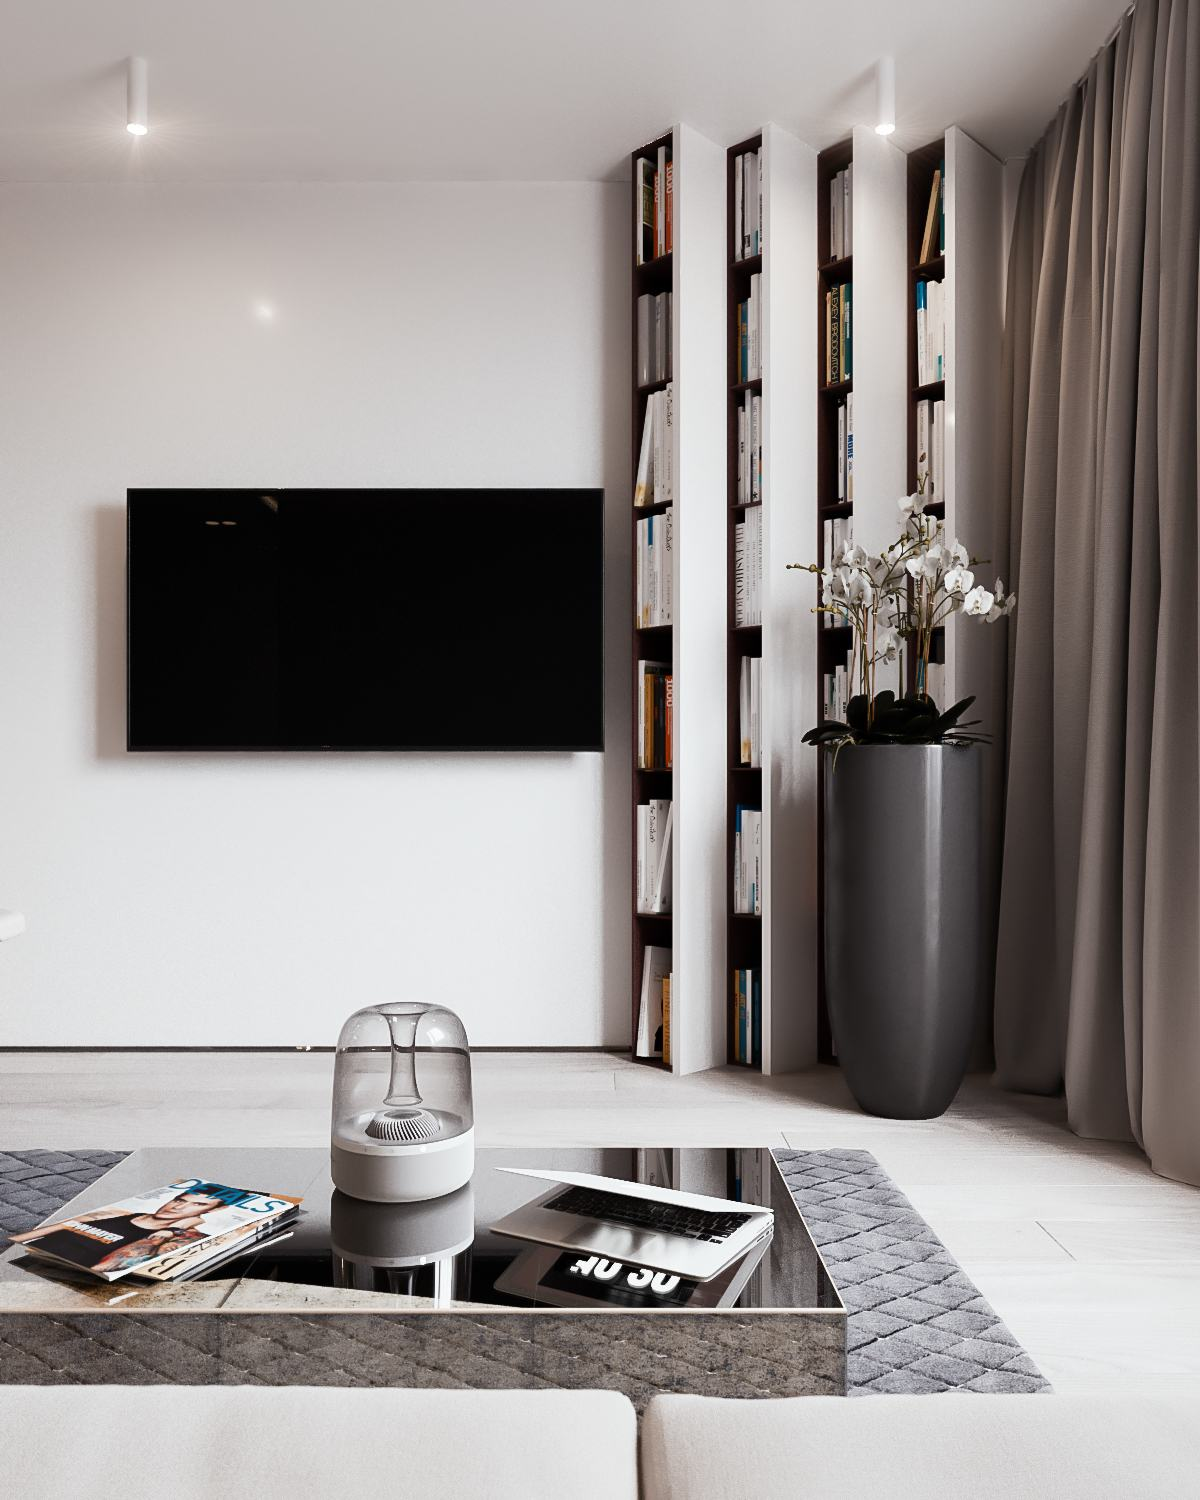 Angled Bookshelf Ideas - A calm and simple family home with neat features